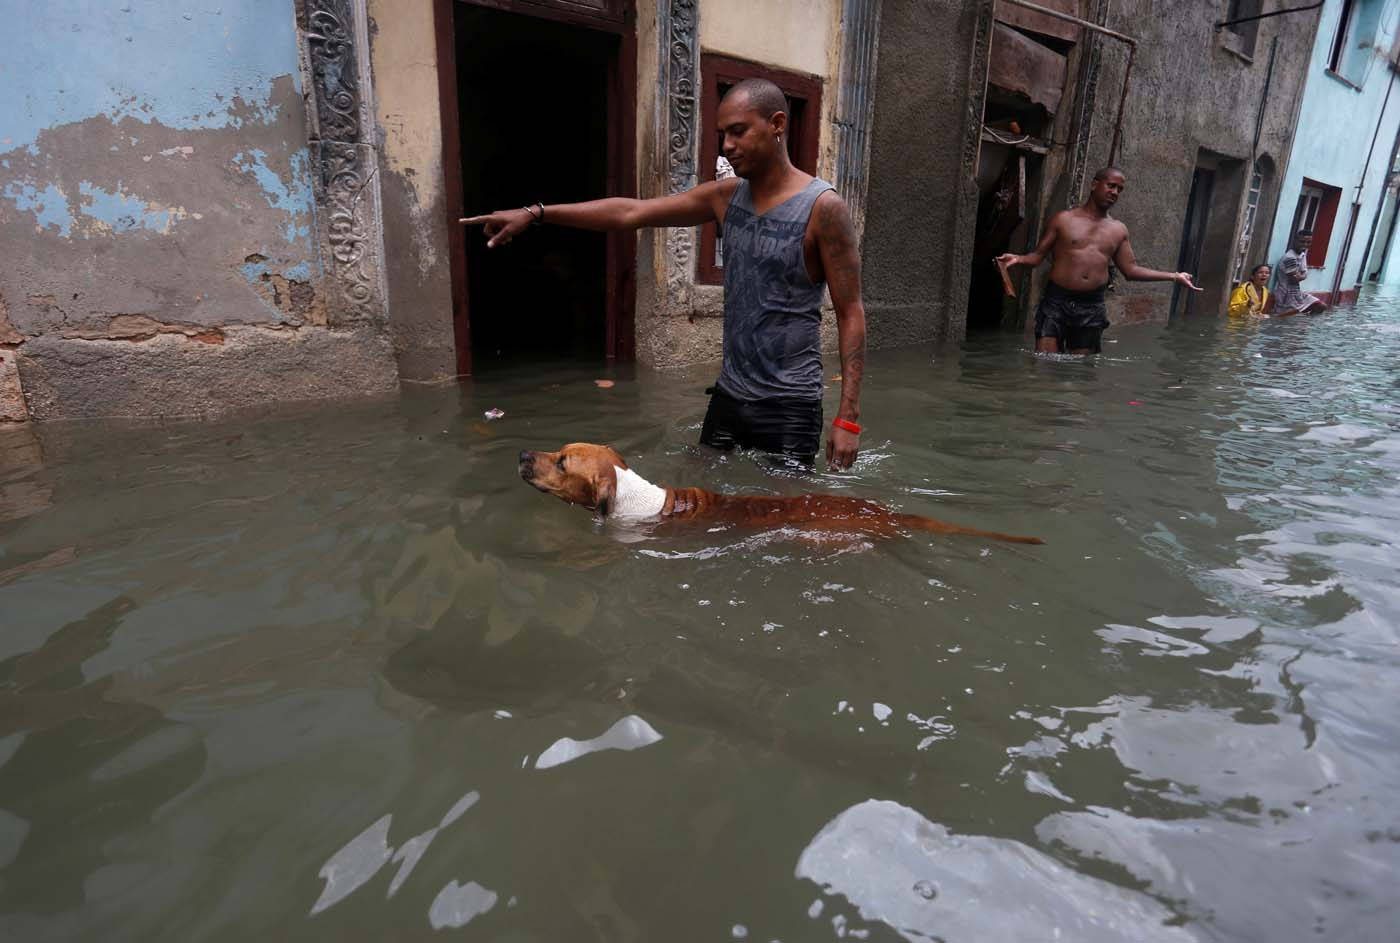 A man gestures to his dog on a flooded street, after the passing of Hurricane Irma, in Havana, Cuba September 10, 2017. REUTERS/Stringer NO SALES. NO ARCHIVES